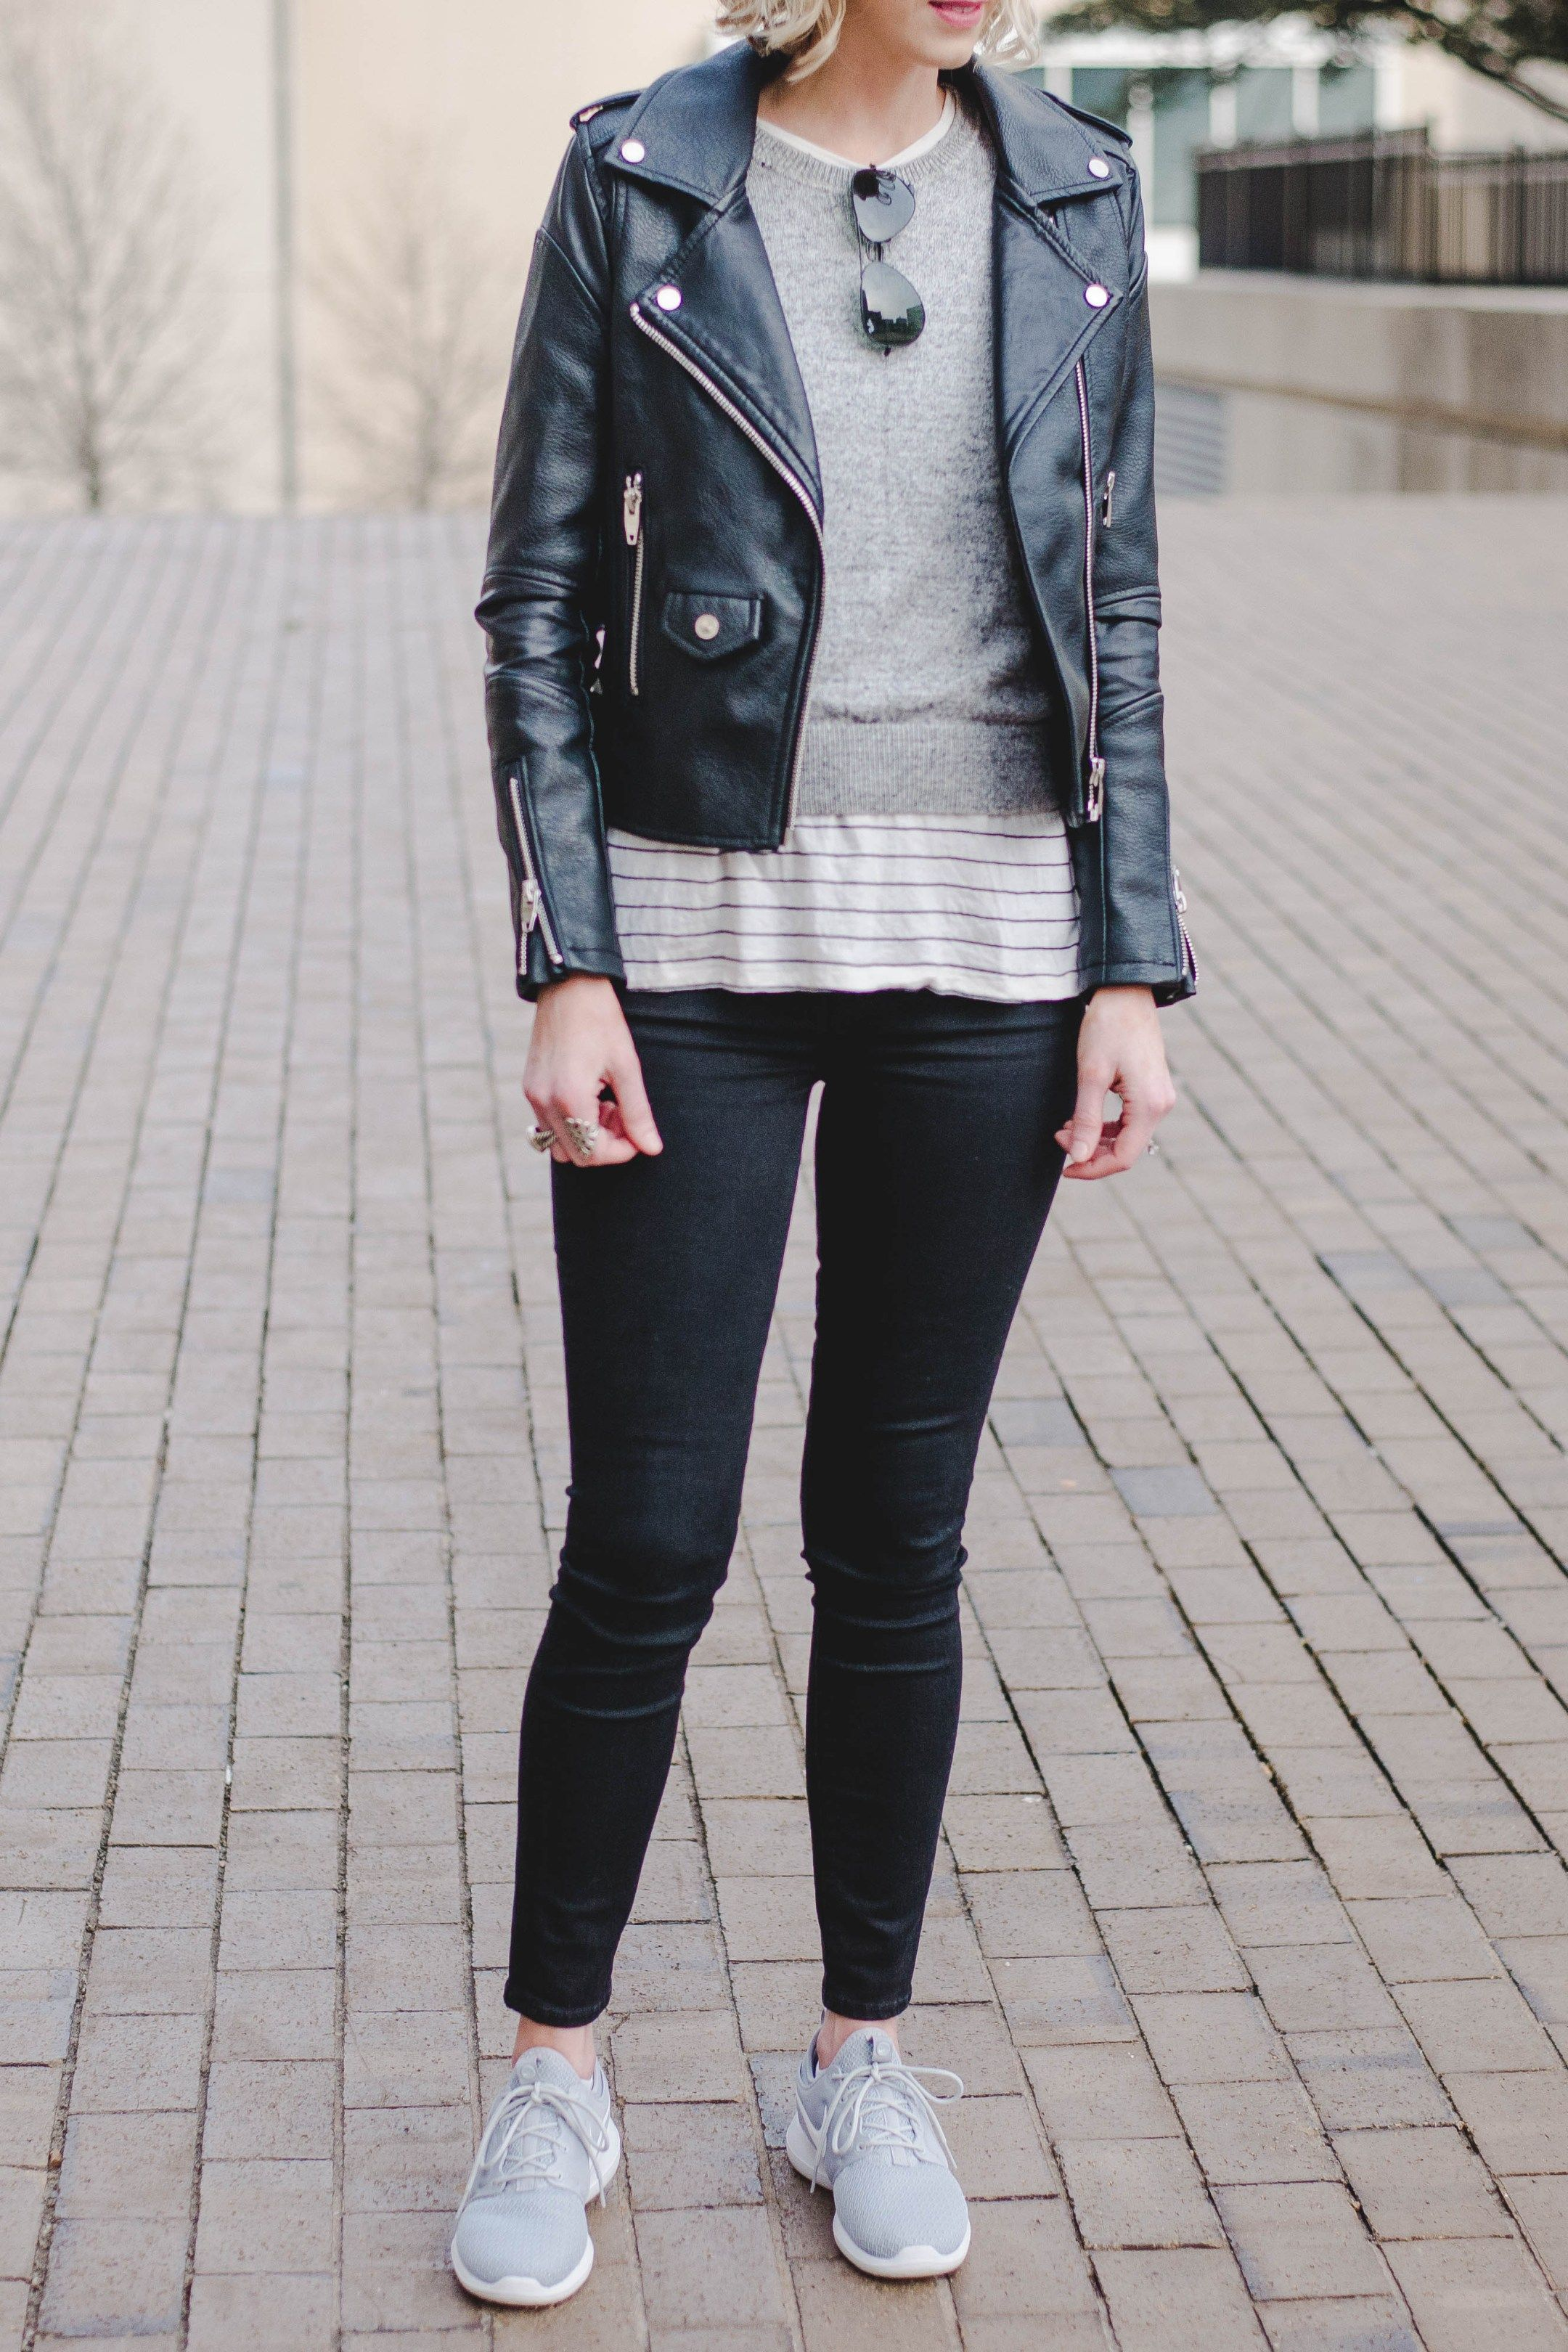 How to Wear a Leather Jacket in 2020 | Jacket outfit women